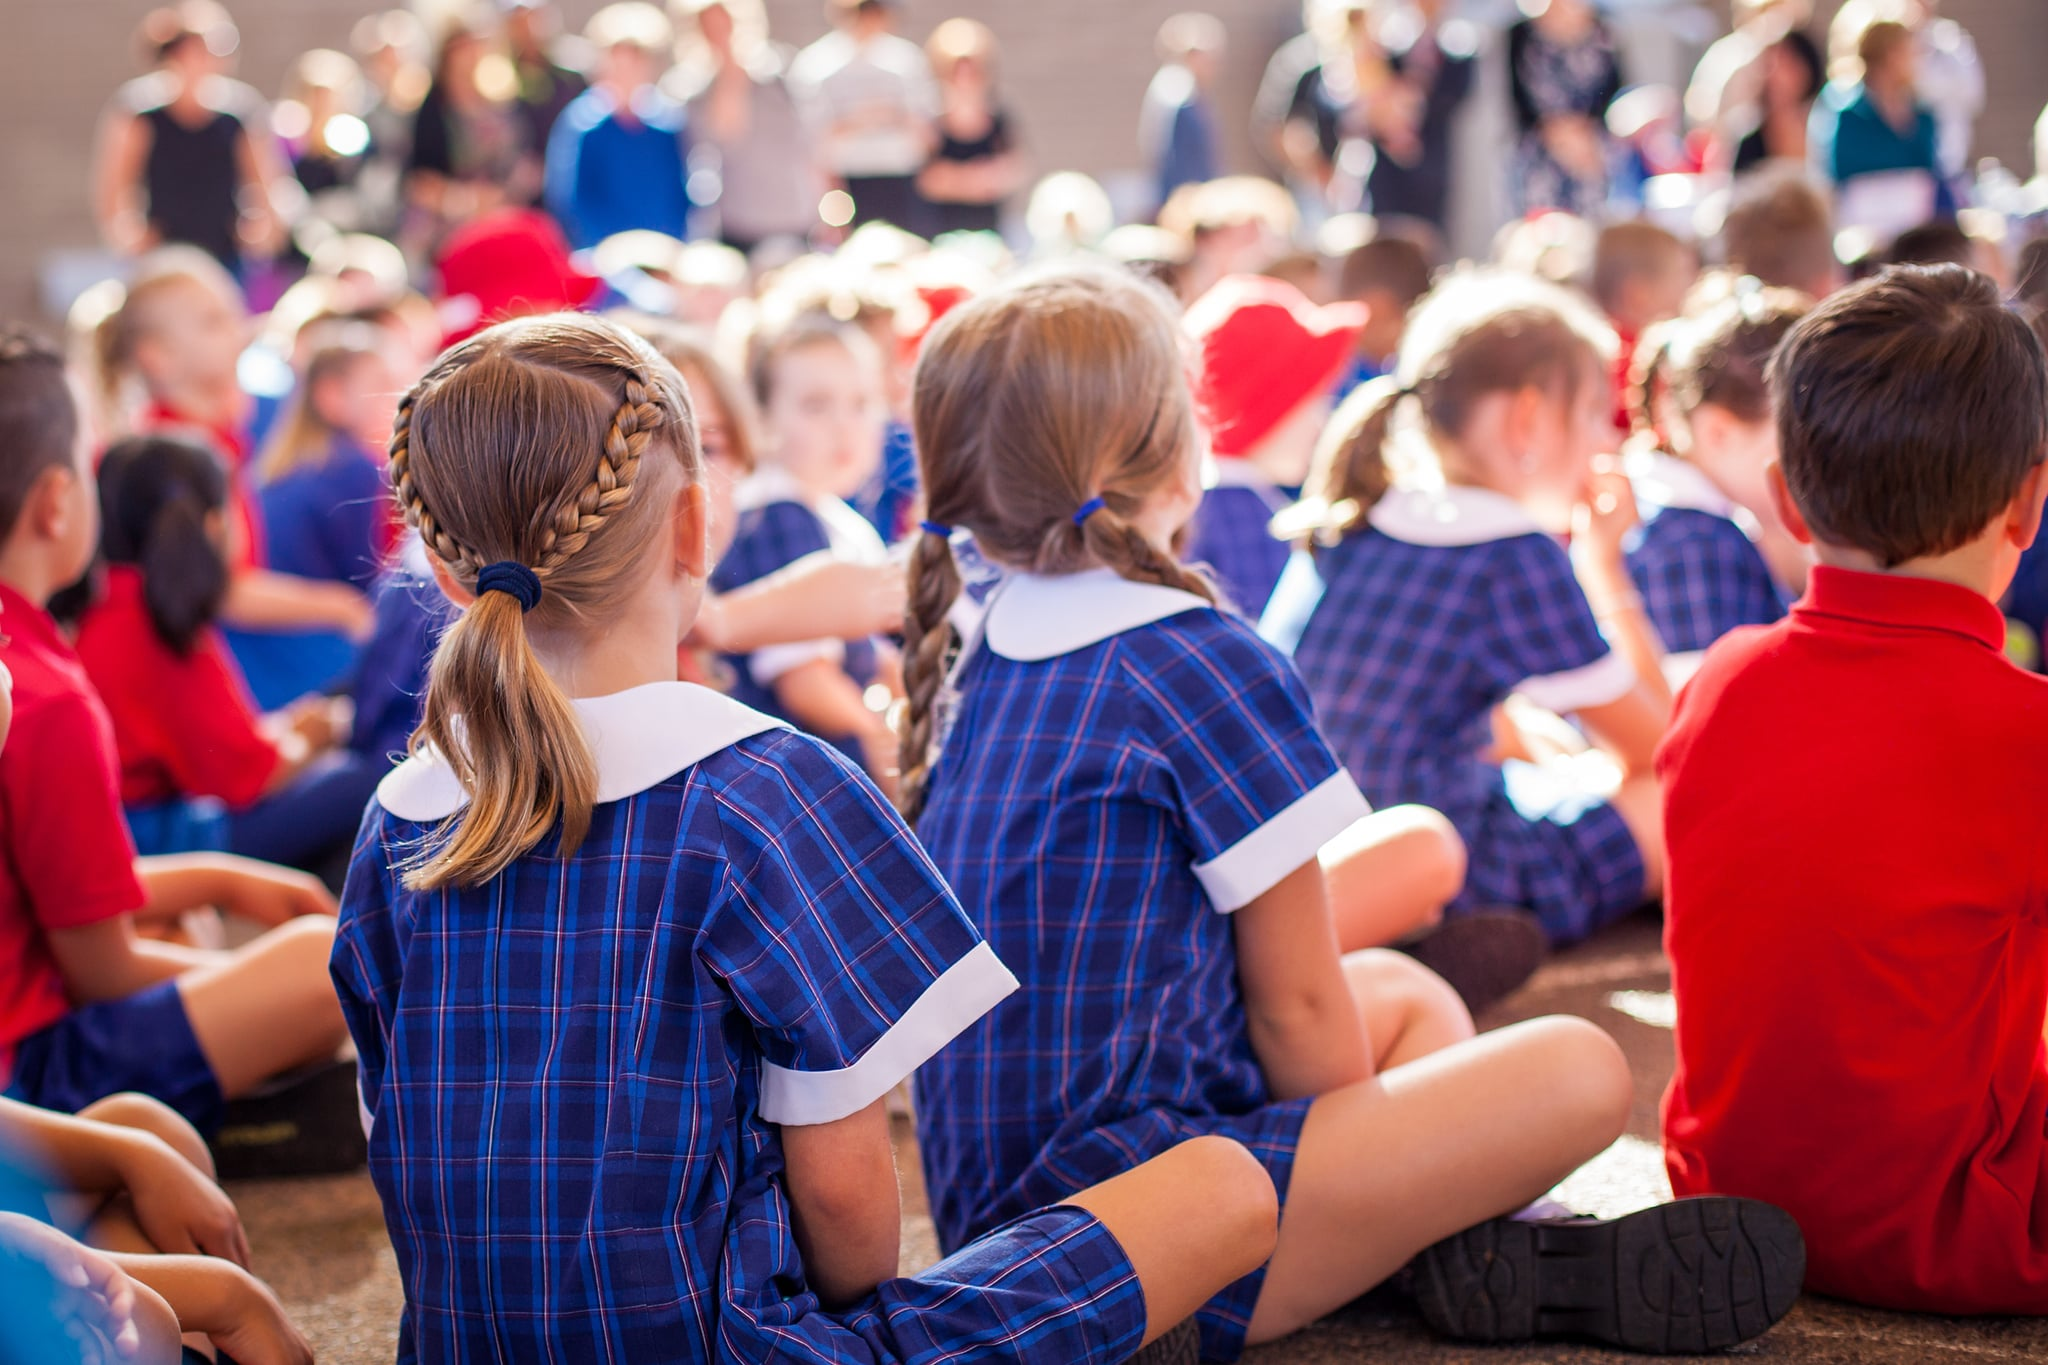 Elementary School Bans Clapping in Favor of Silent Cheering at Assemblies